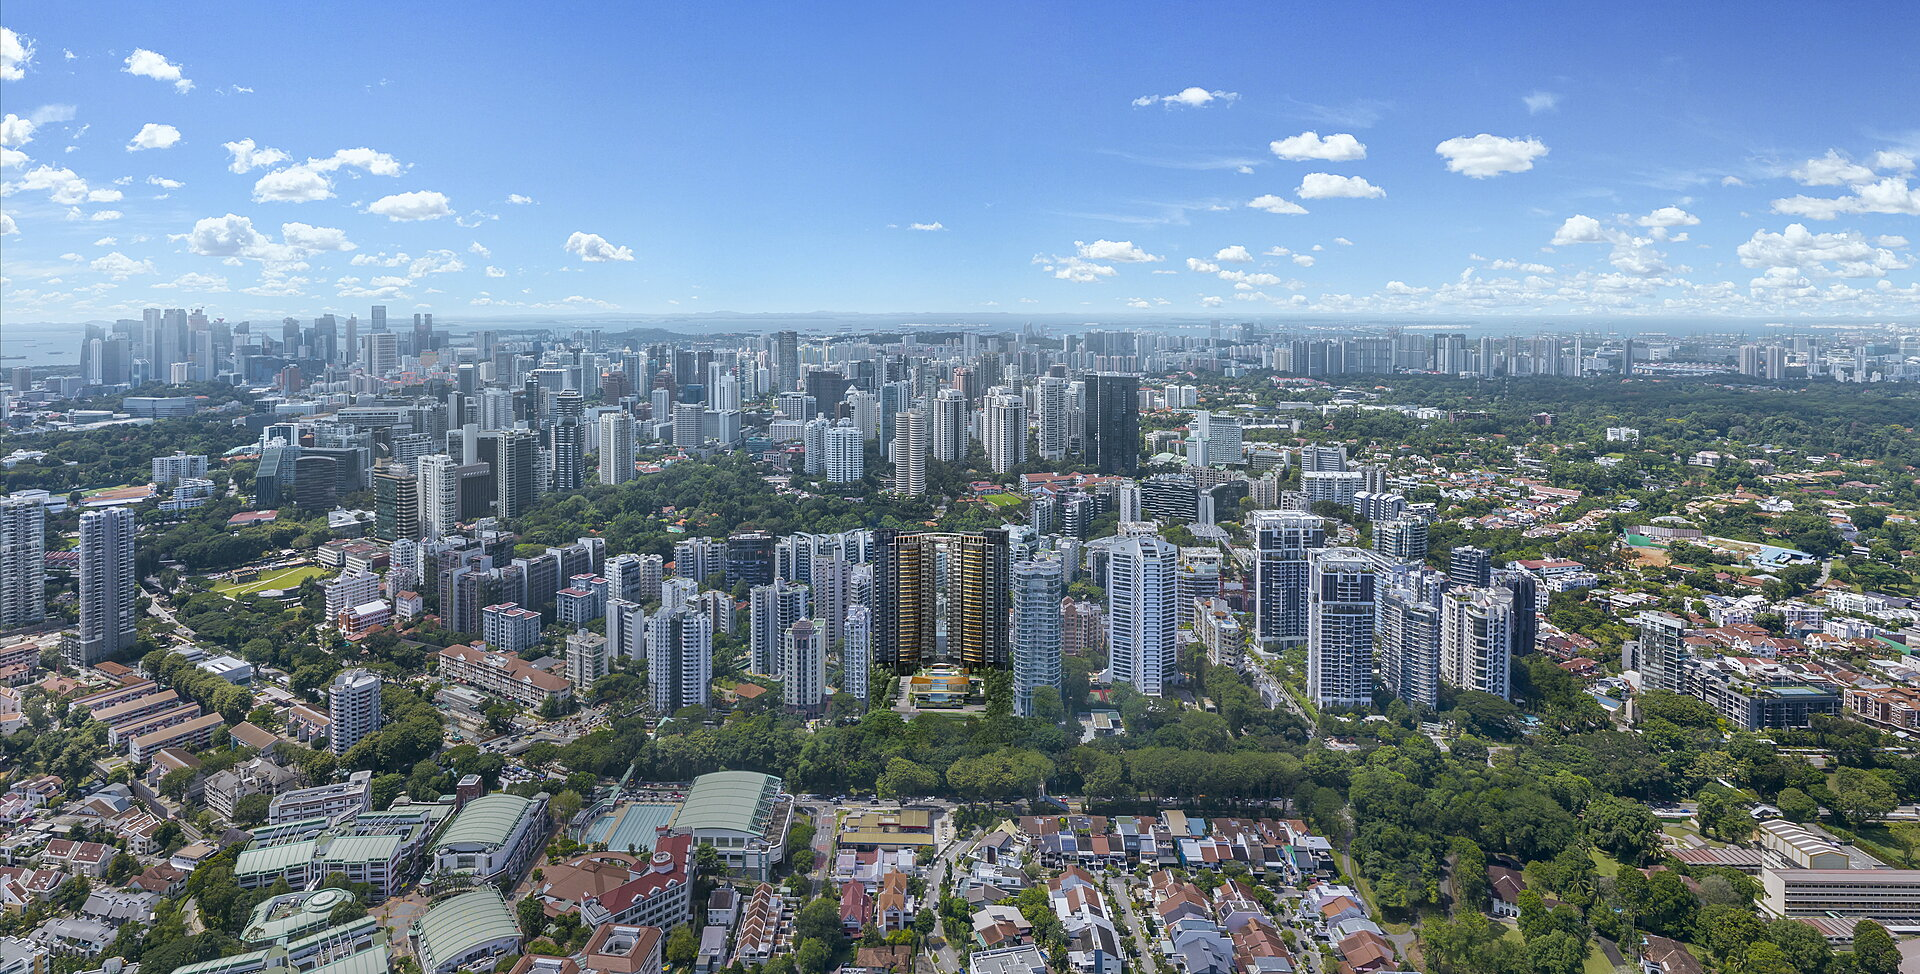 PERFECT TEN THE LUXURIOUS FREEHOLD CONDO IN THE HEART OF BUKIT TIMAH